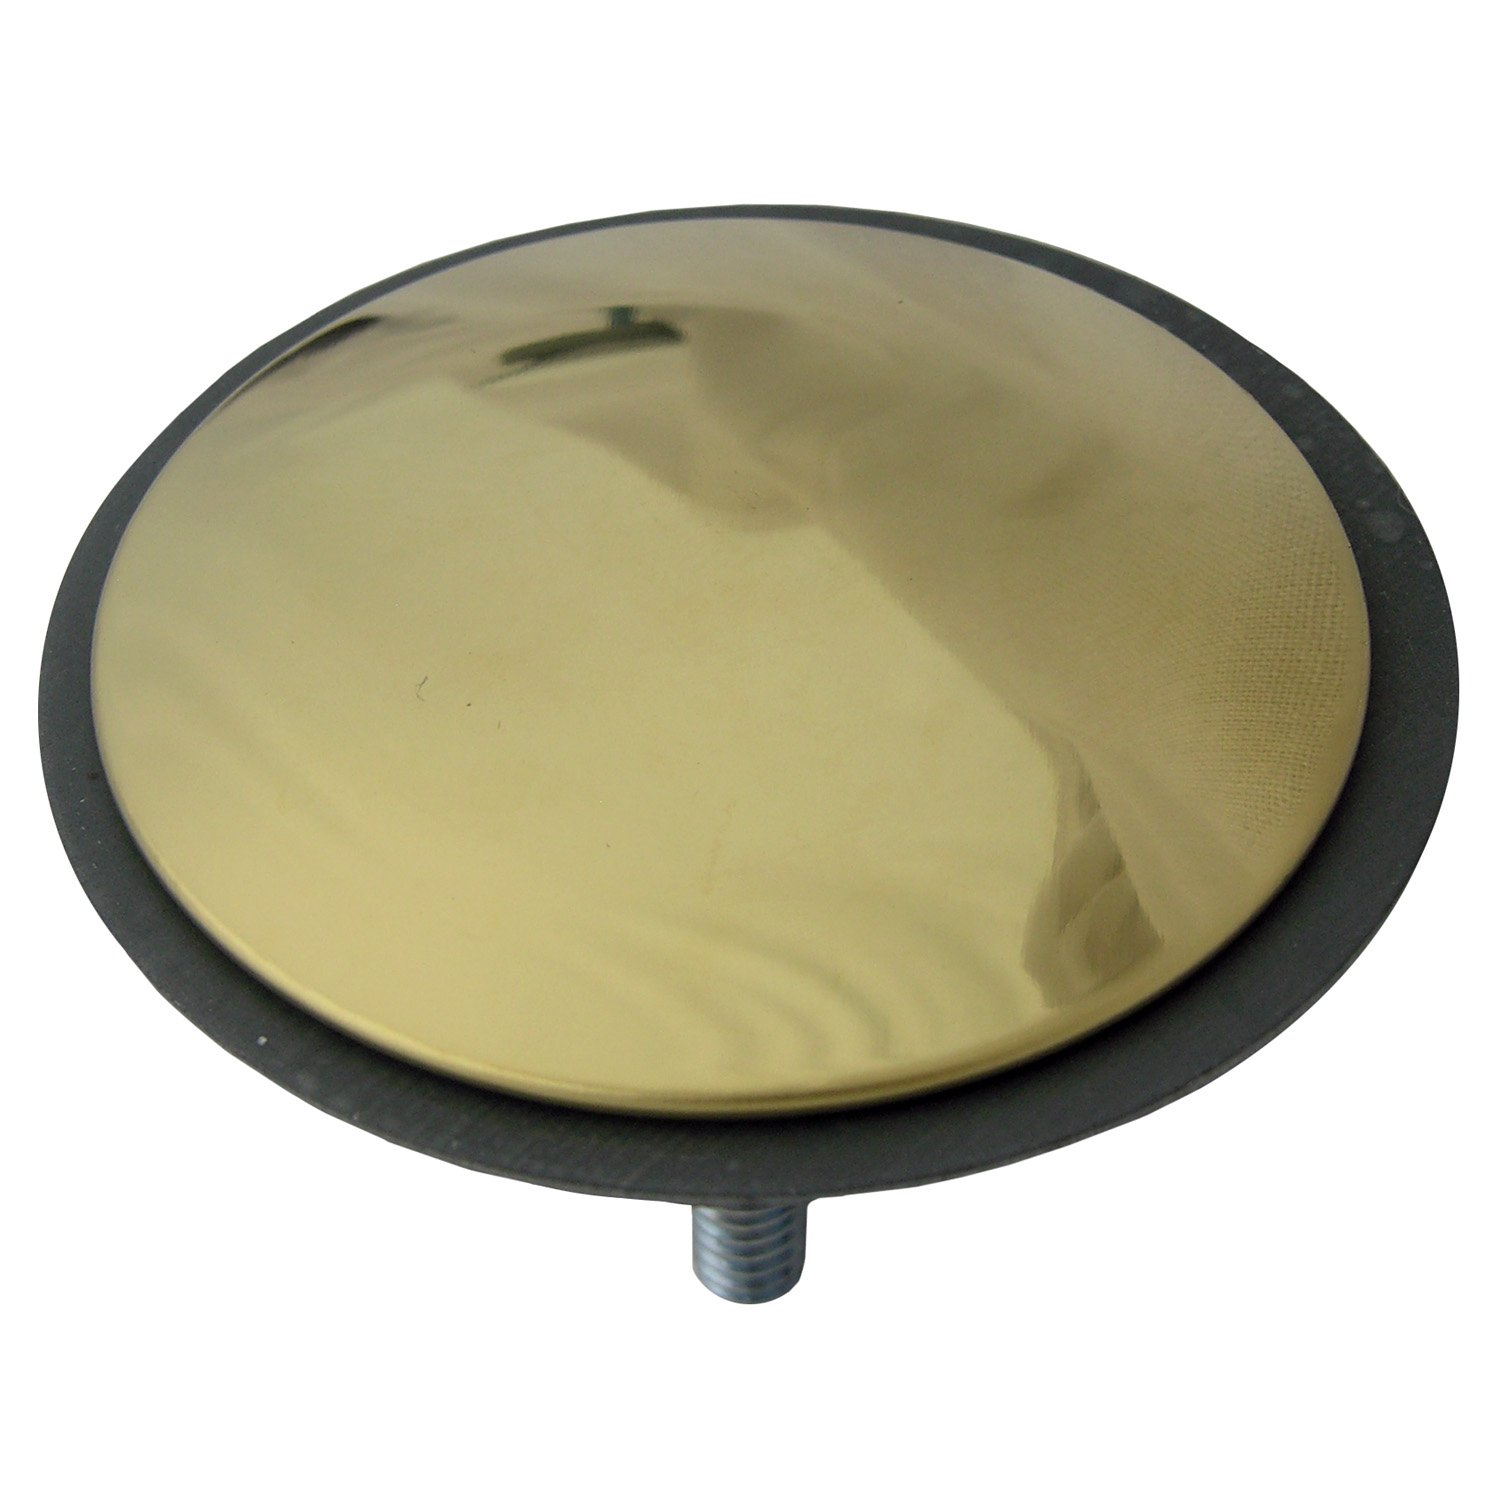 Simpatico 30401P 2-Inch Faucet Hole Cover, Polished Brass by Simpatico